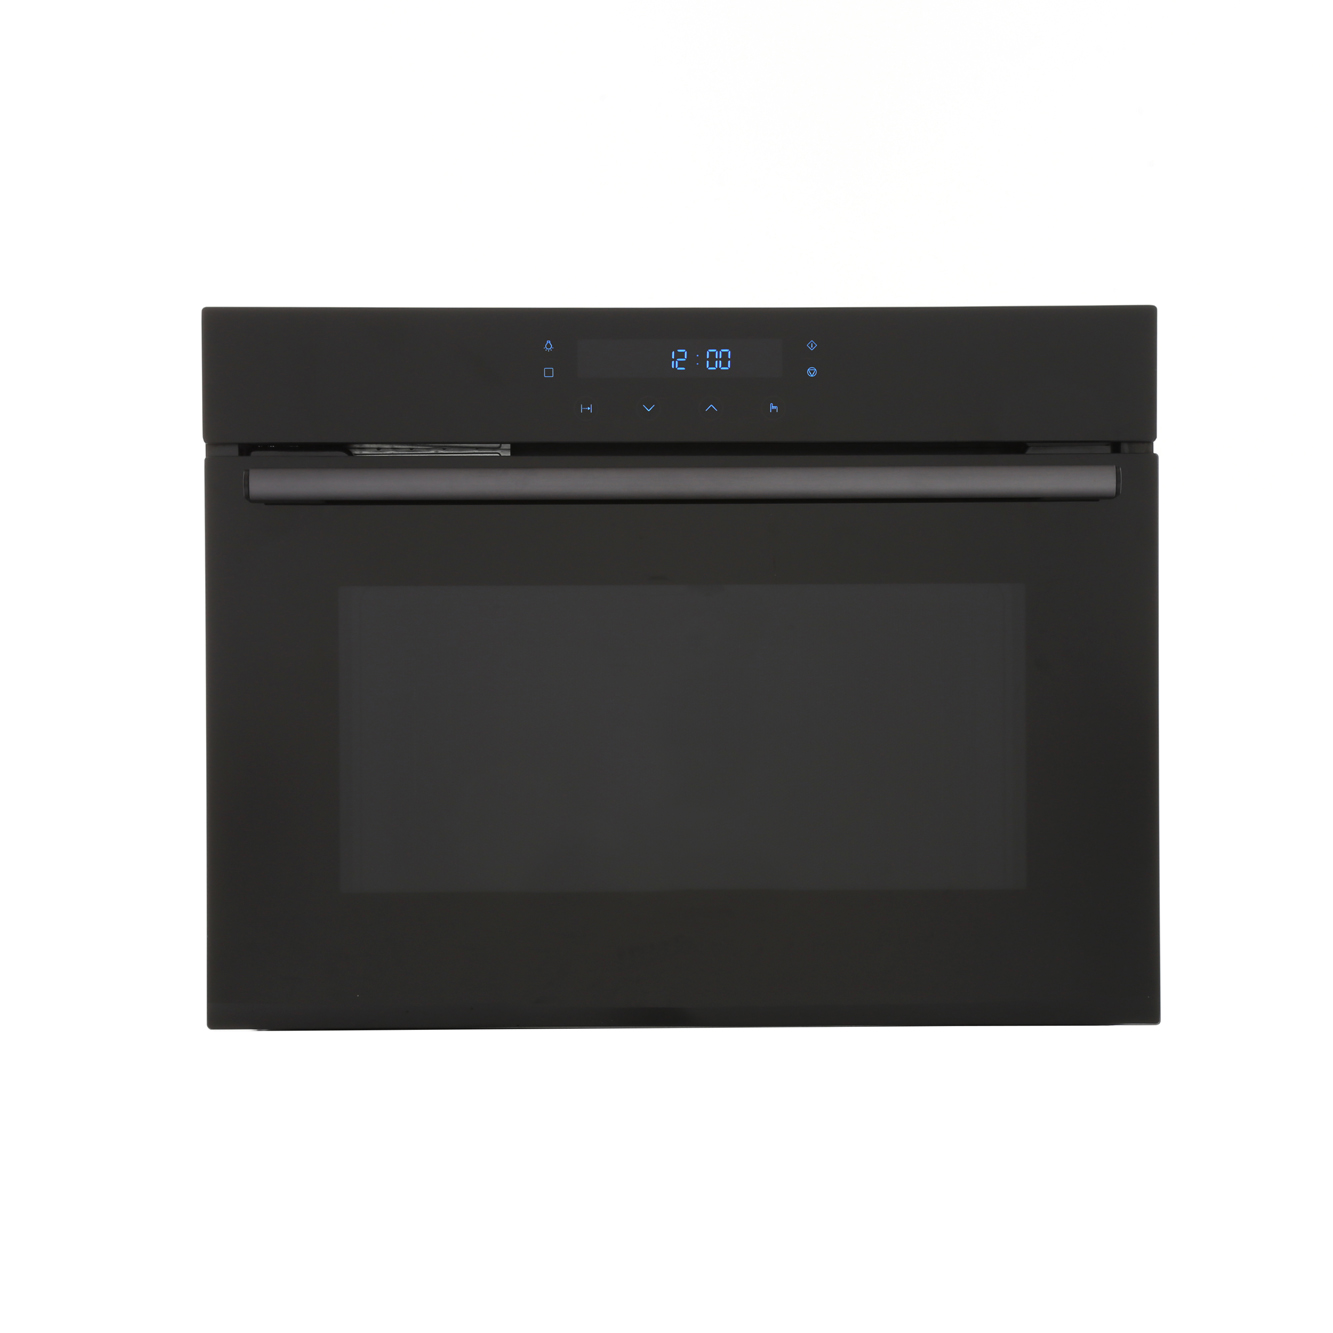 Buy Samsung Nq50h5537kb Compact Oven Stainless Steel